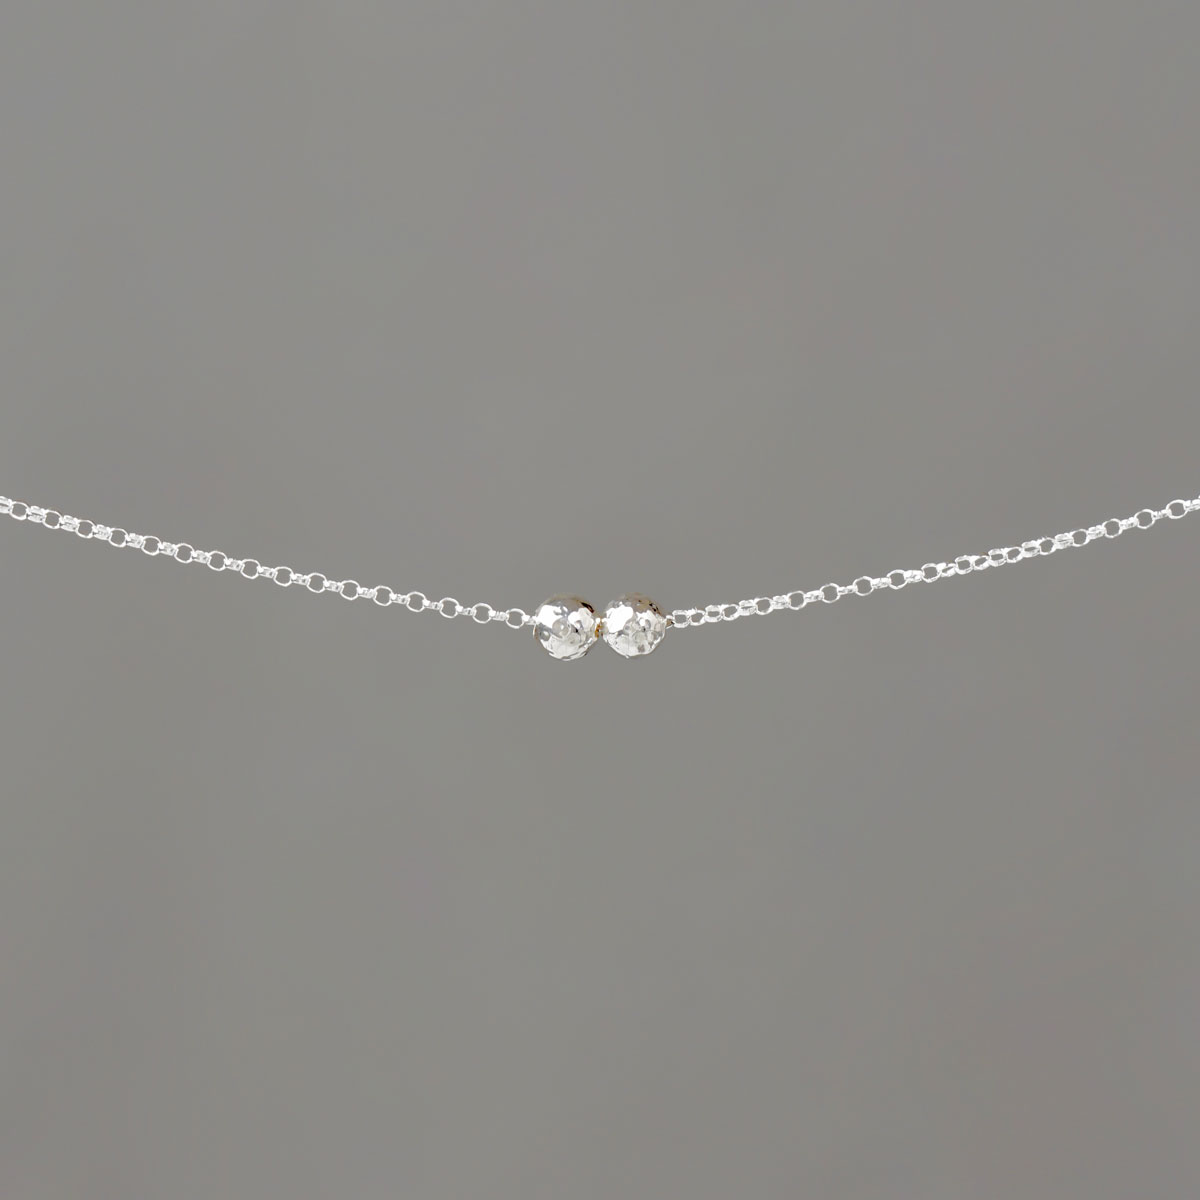 Small Hammered Balls on Rolo Chain in Sterling Silver